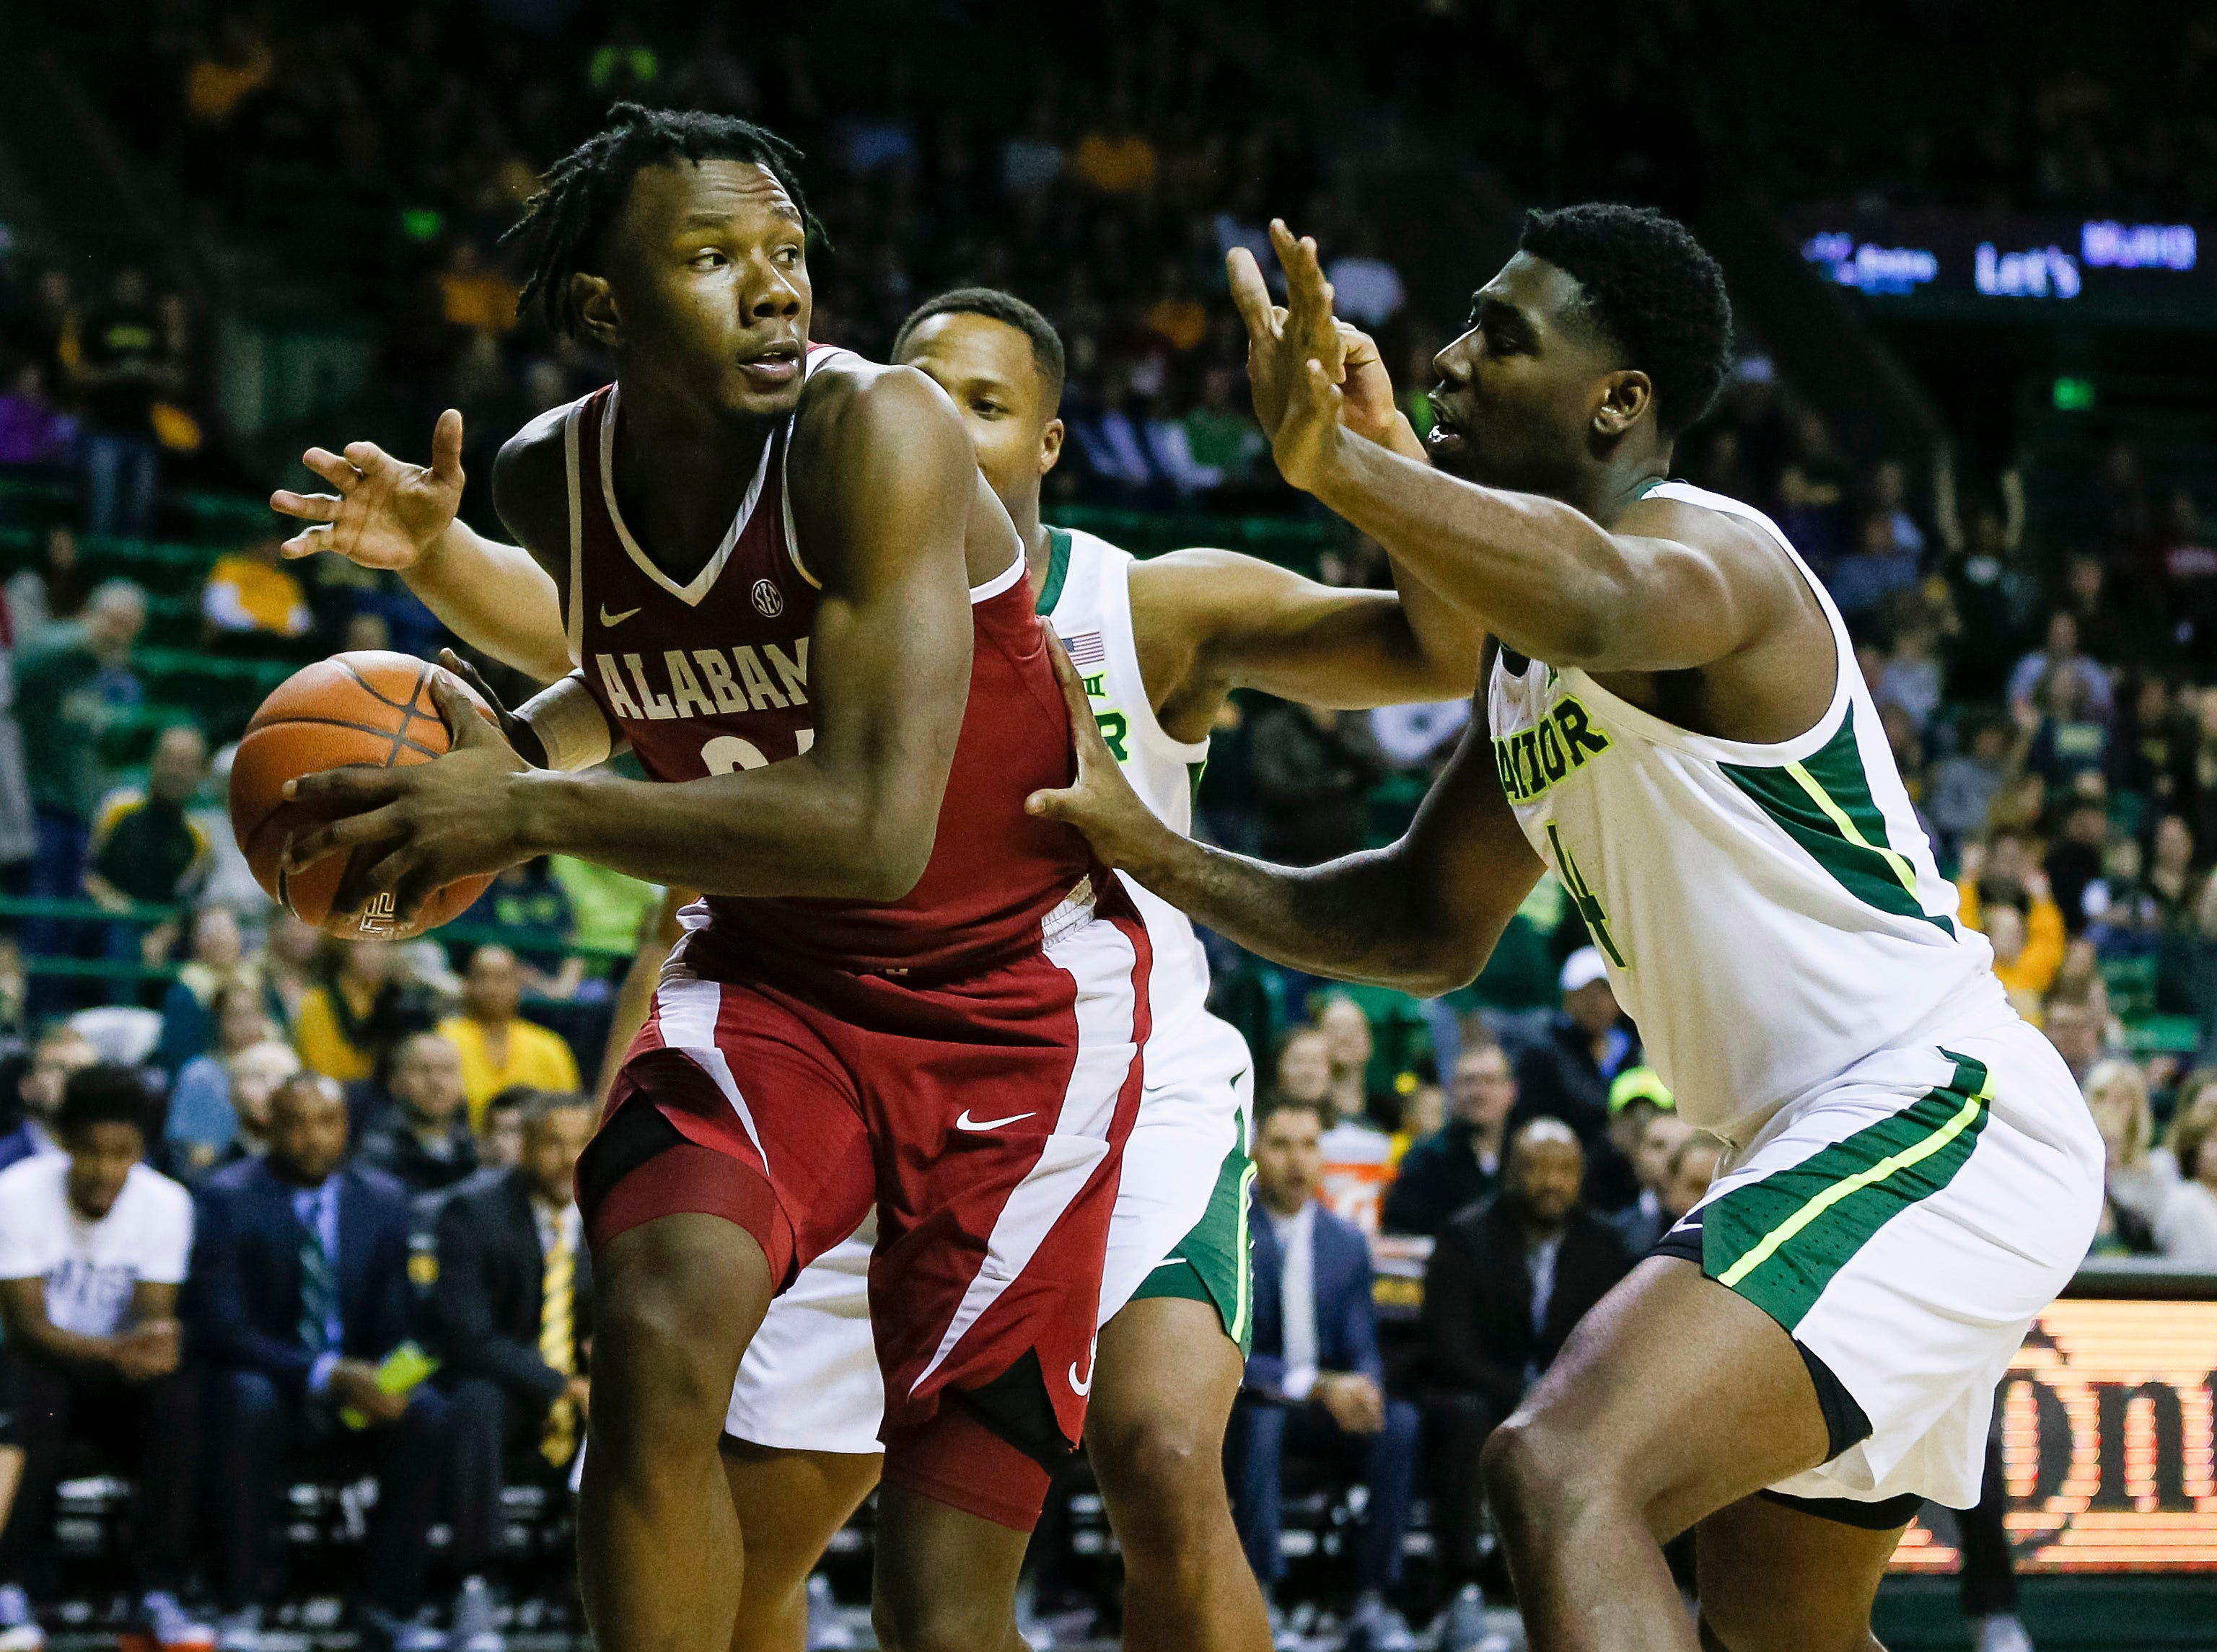 Jan 26, 2019; Waco, TX, USA; Alabama Crimson Tide guard Tevin Mack (34) controls the ball in front of Baylor Bears guard Mark Vital (11) and guard Mario Kegler (4) during the first half at Ferrell Center. Mandatory Credit: Ray Carlin-USA TODAY Sports